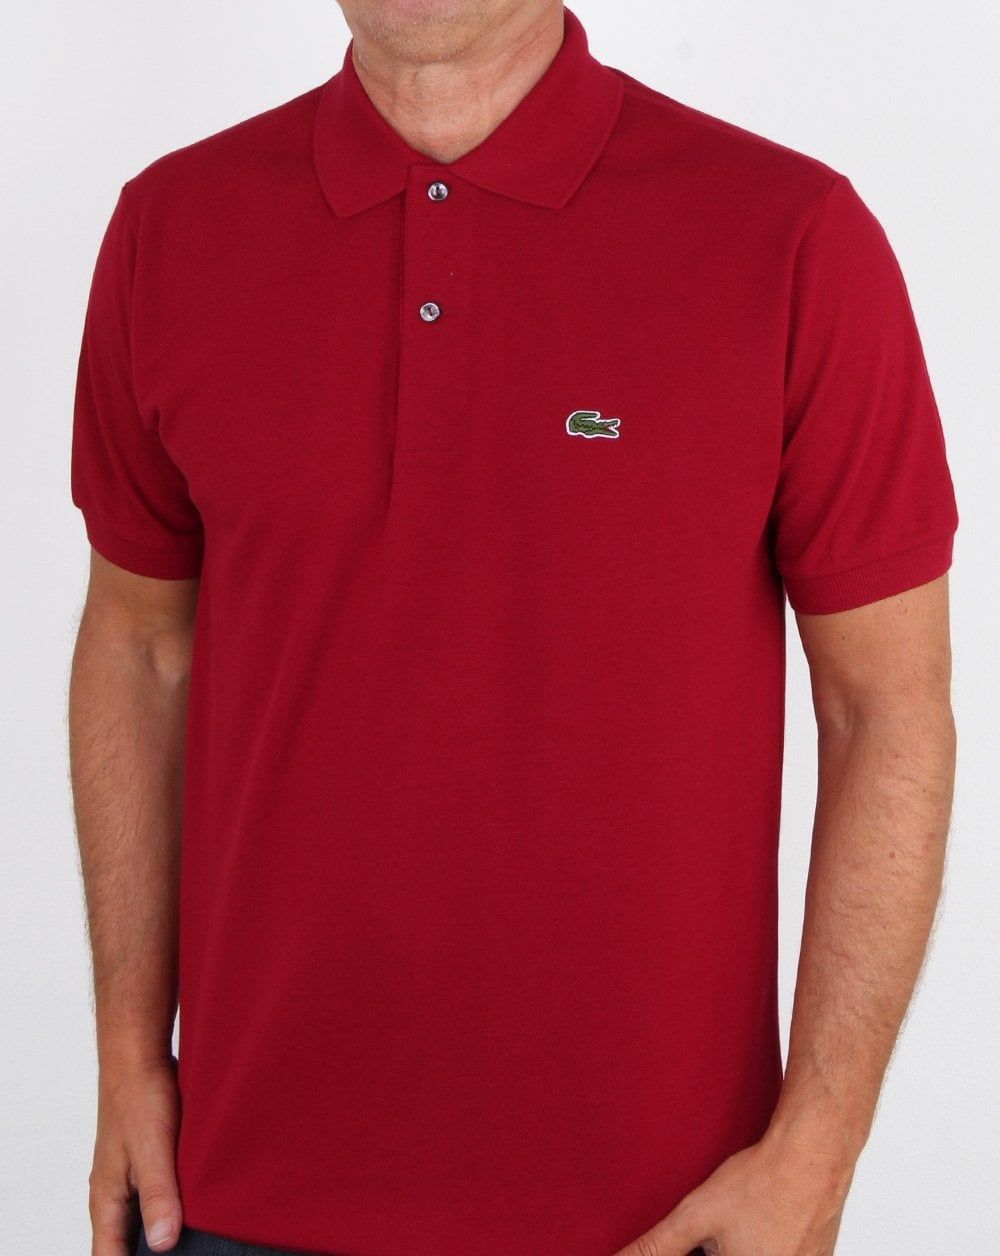 c1f3f51ab1 Lacoste Lacoste Classic Two Button Polo Shirt Bordeaux